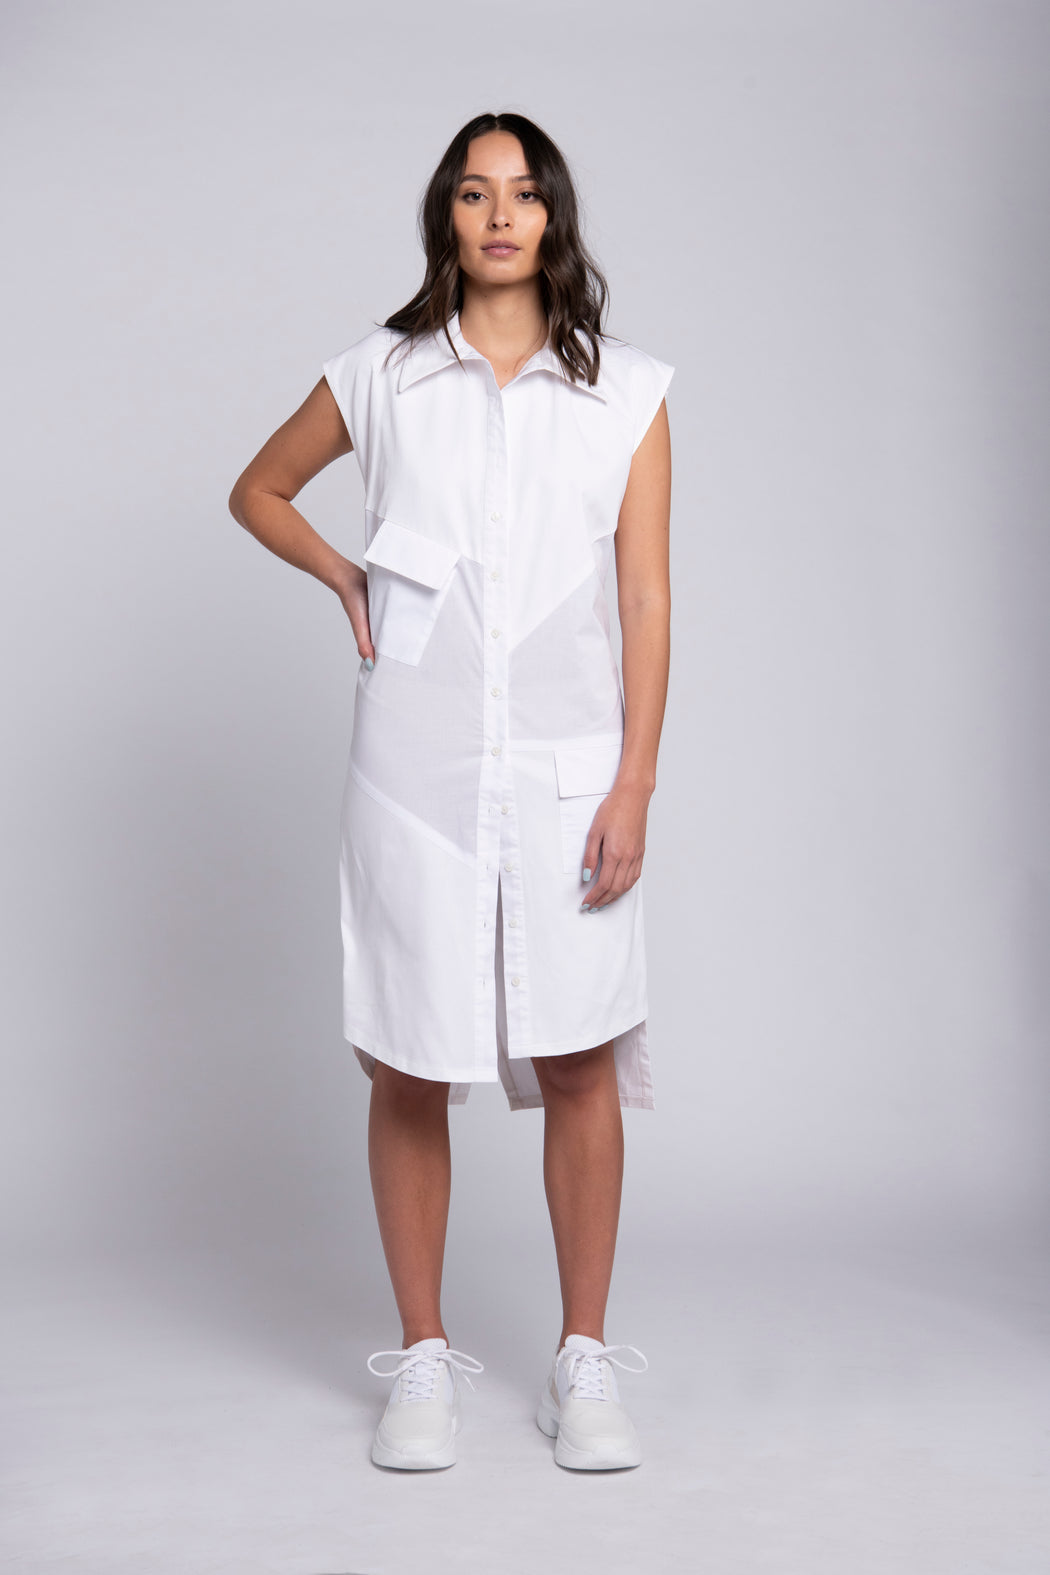 GET SHIRTY DRESS